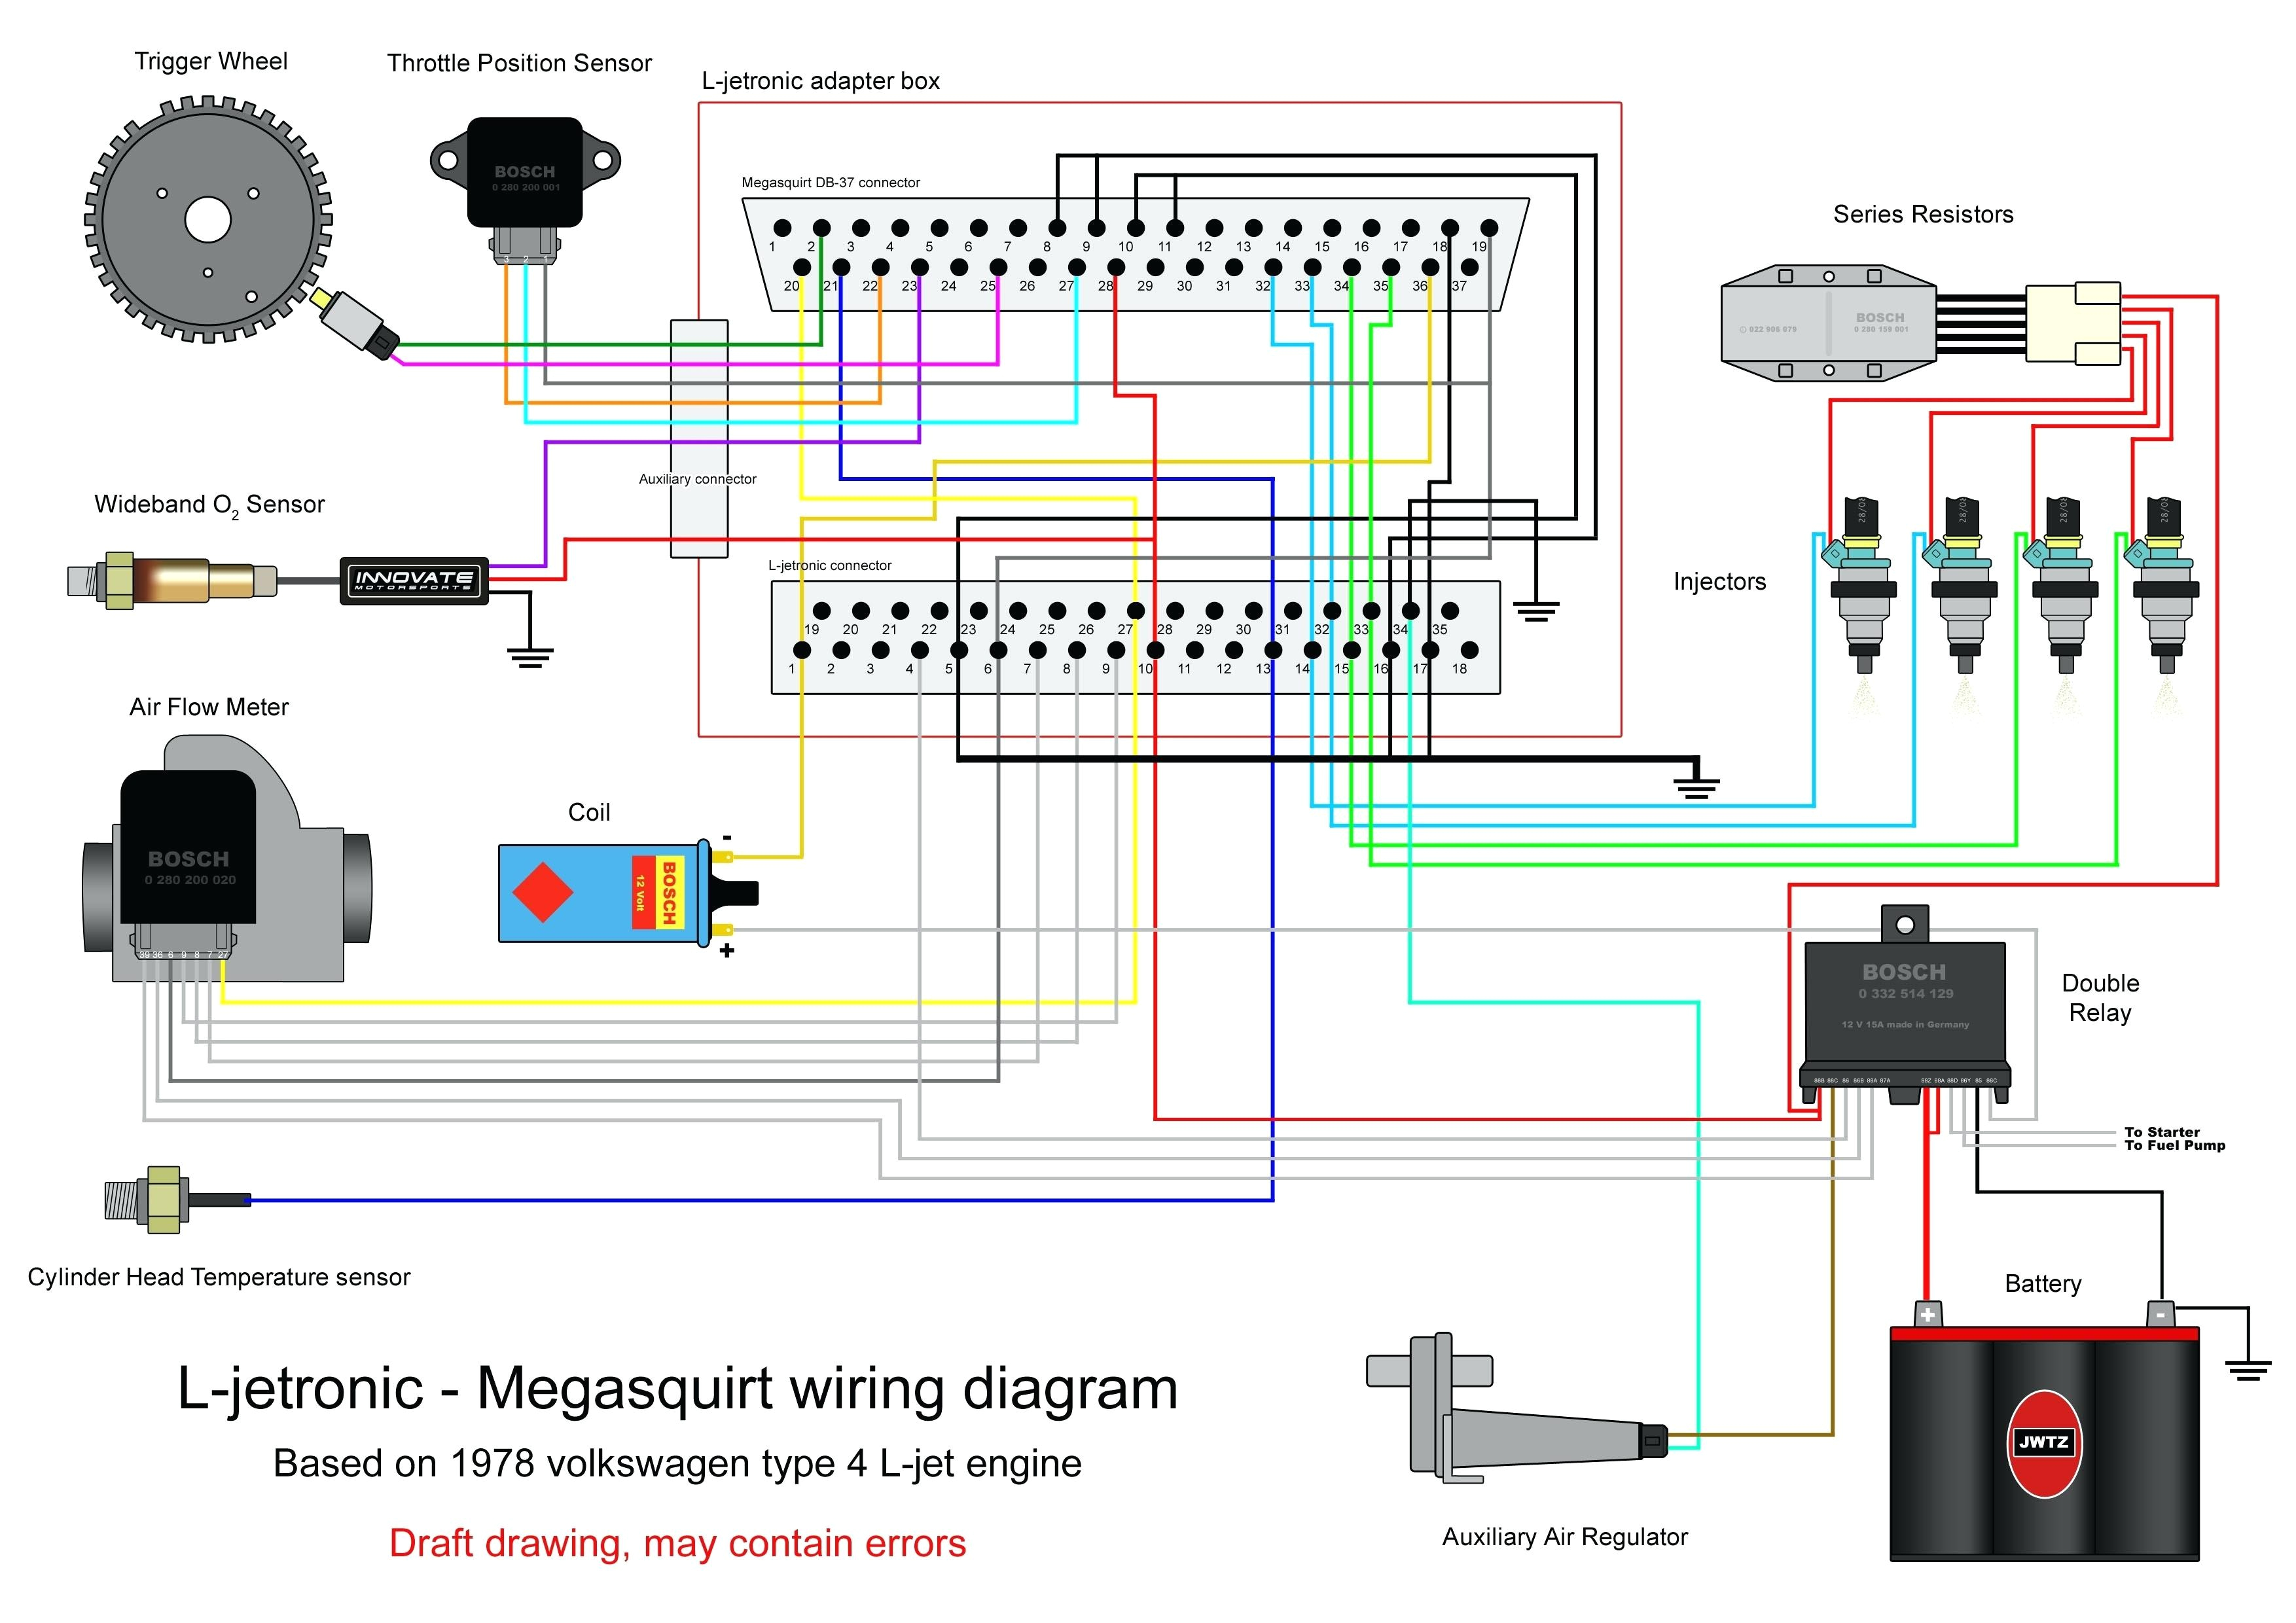 howell ls1 wiring harness diagram wiring diagram centrehowell ls1 wiring harness diagram wiring libraryhowell ls1 wiring